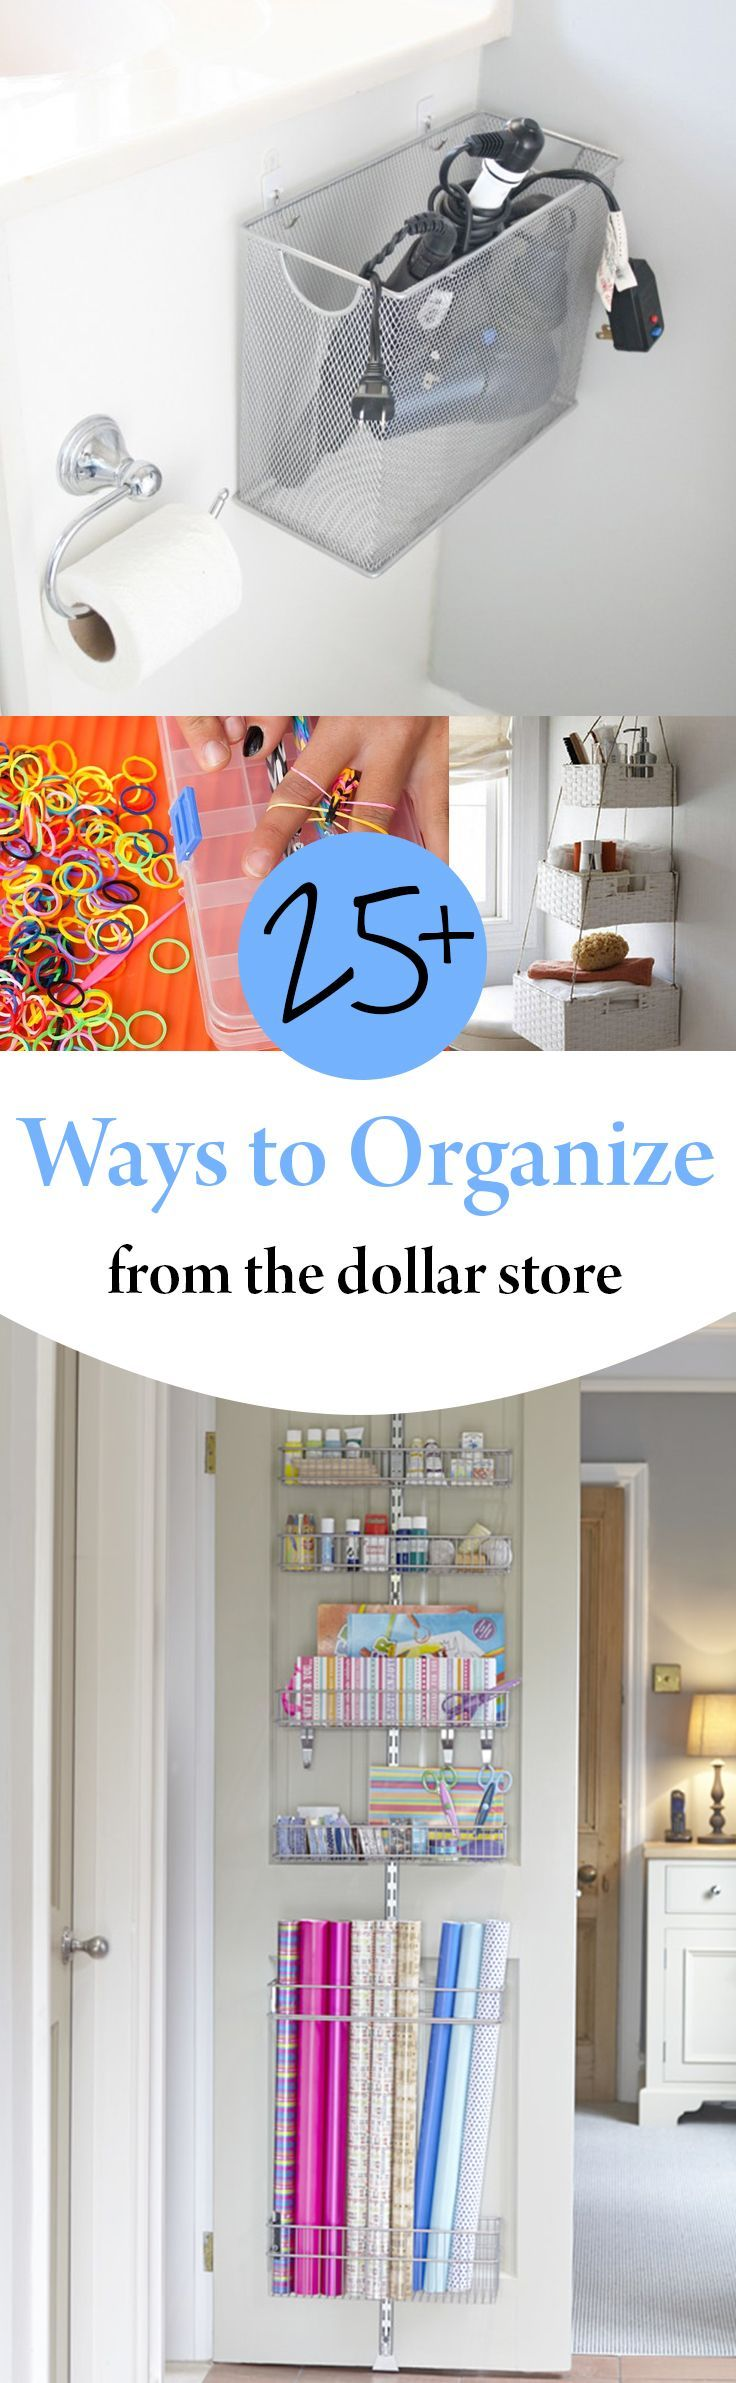 25 Best Ideas about Dollar Store Hacks on Pinterest